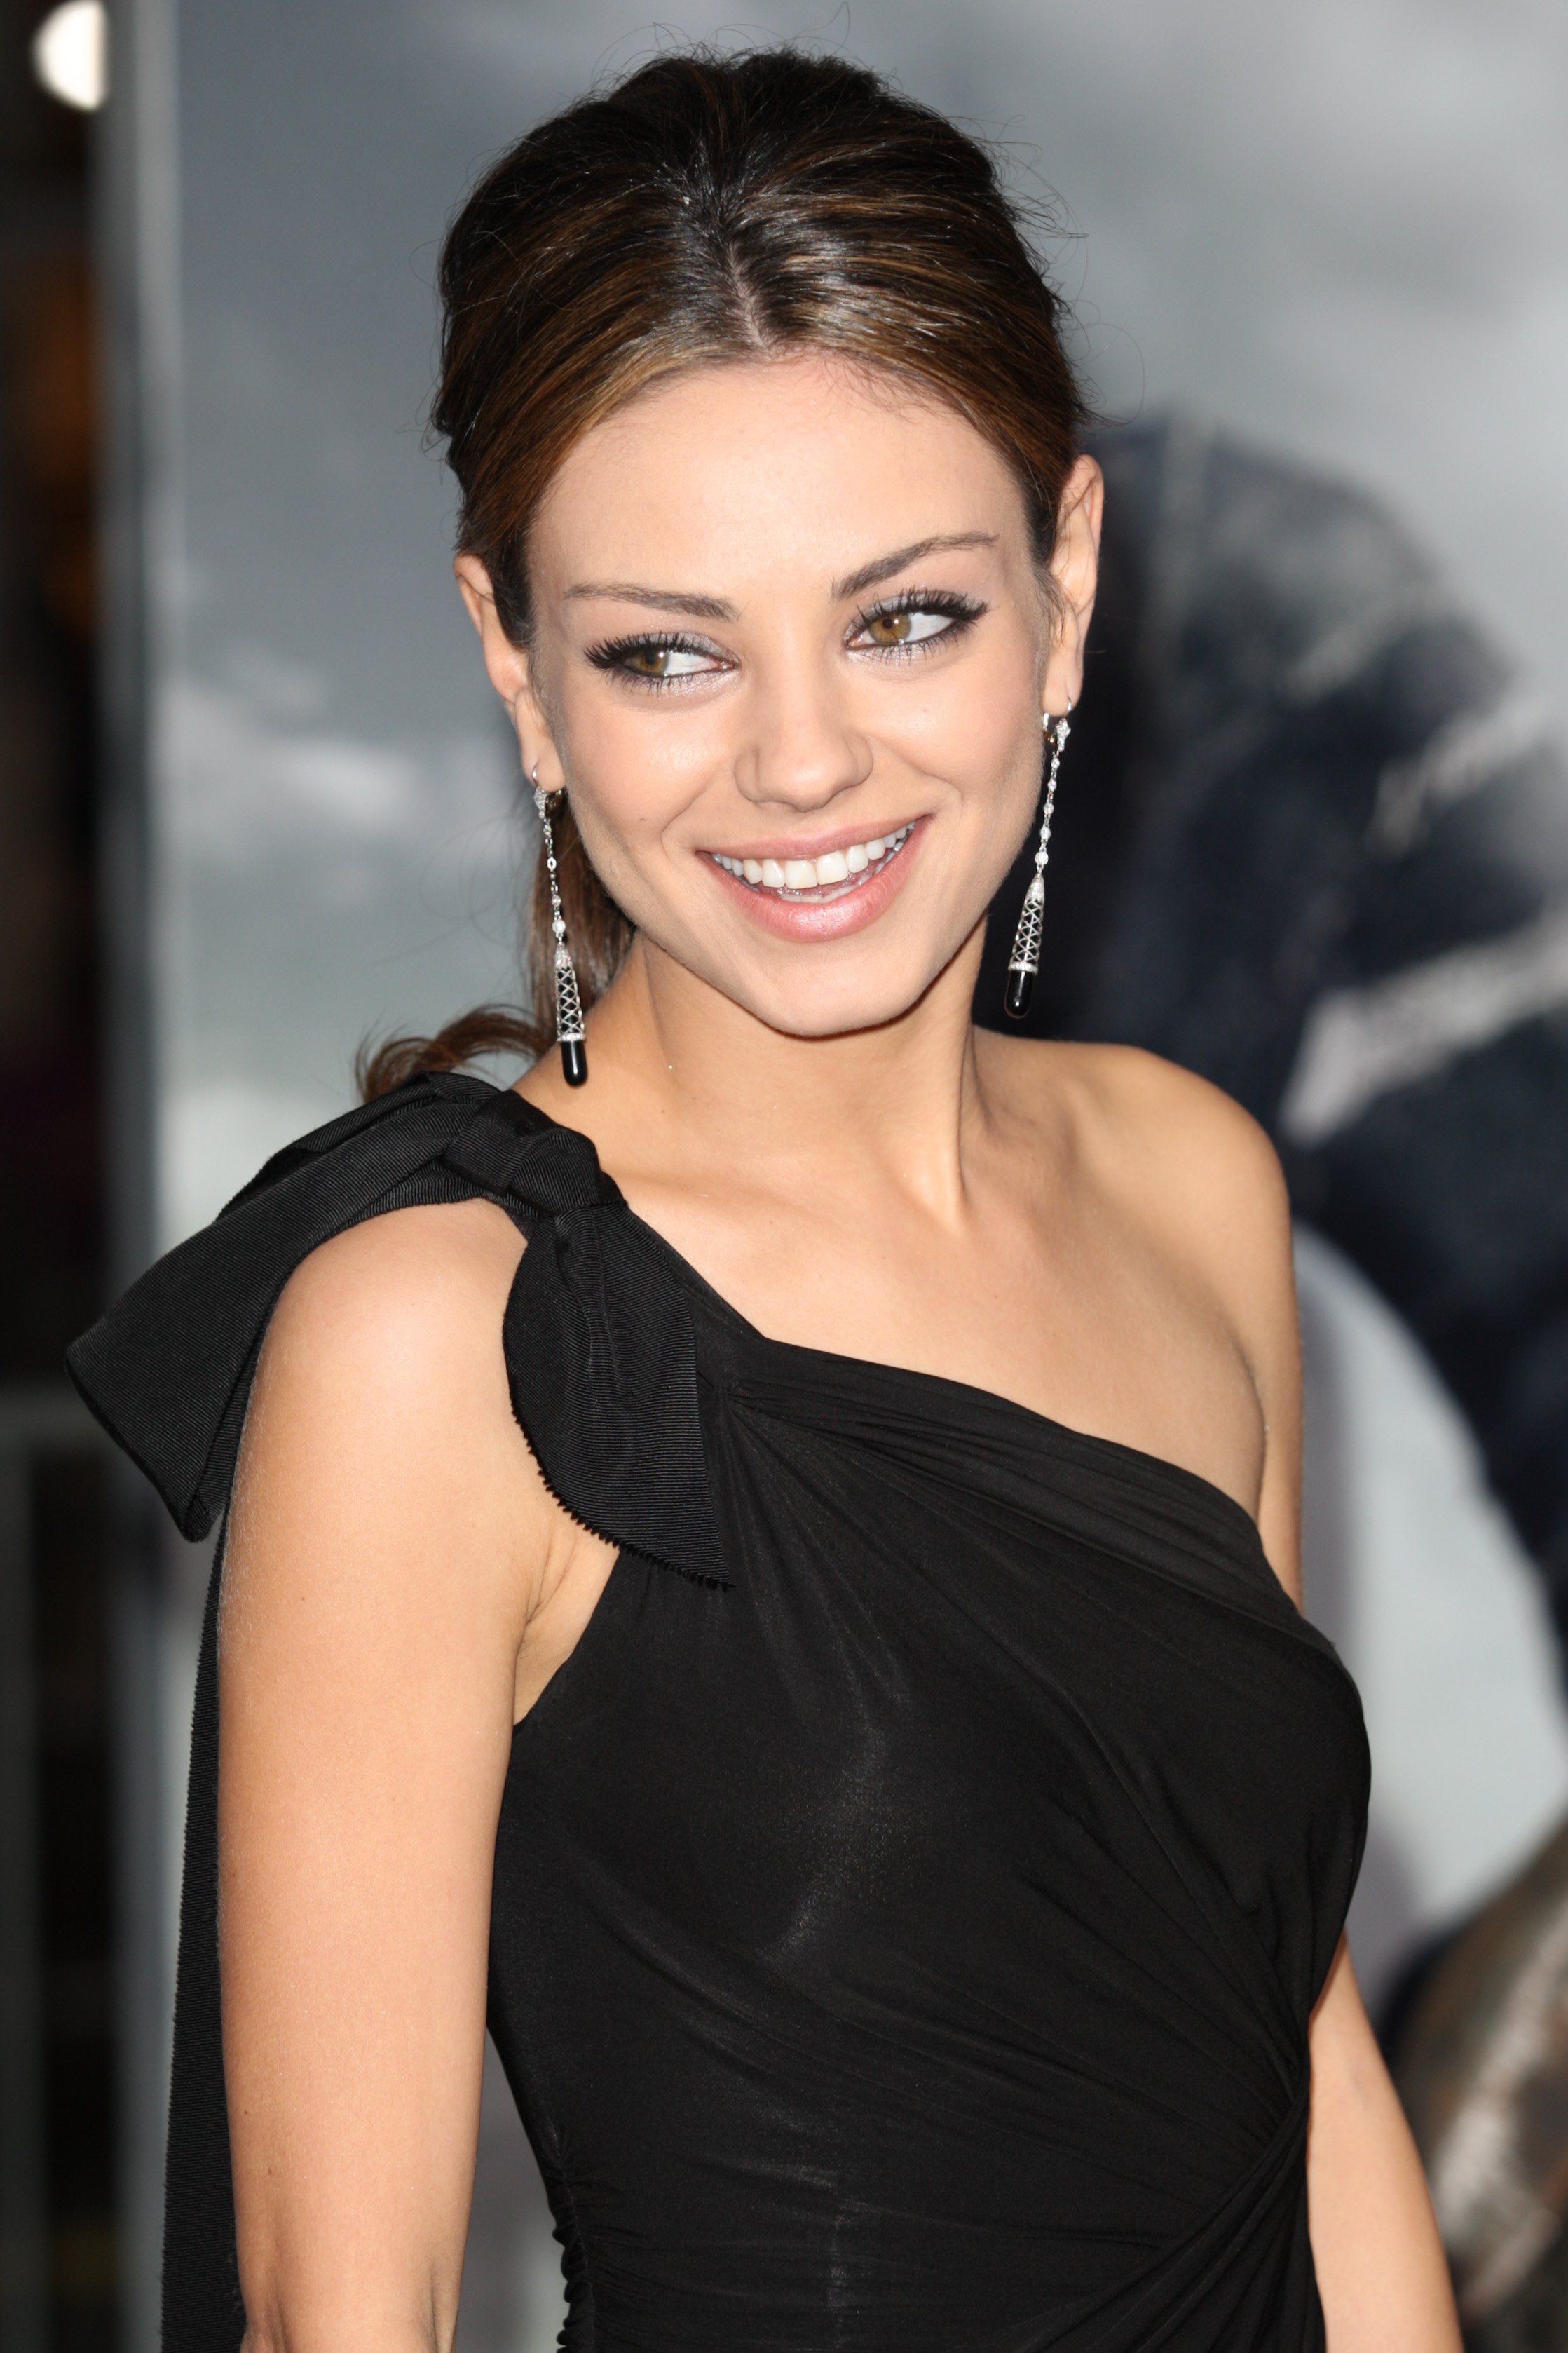 Image Credits: Shutterstock / Photo Works | Mila Kunis attends The Book of Eli premiere on January 11 2010 at Grauman's Chinese Theater in Hollywood, California.